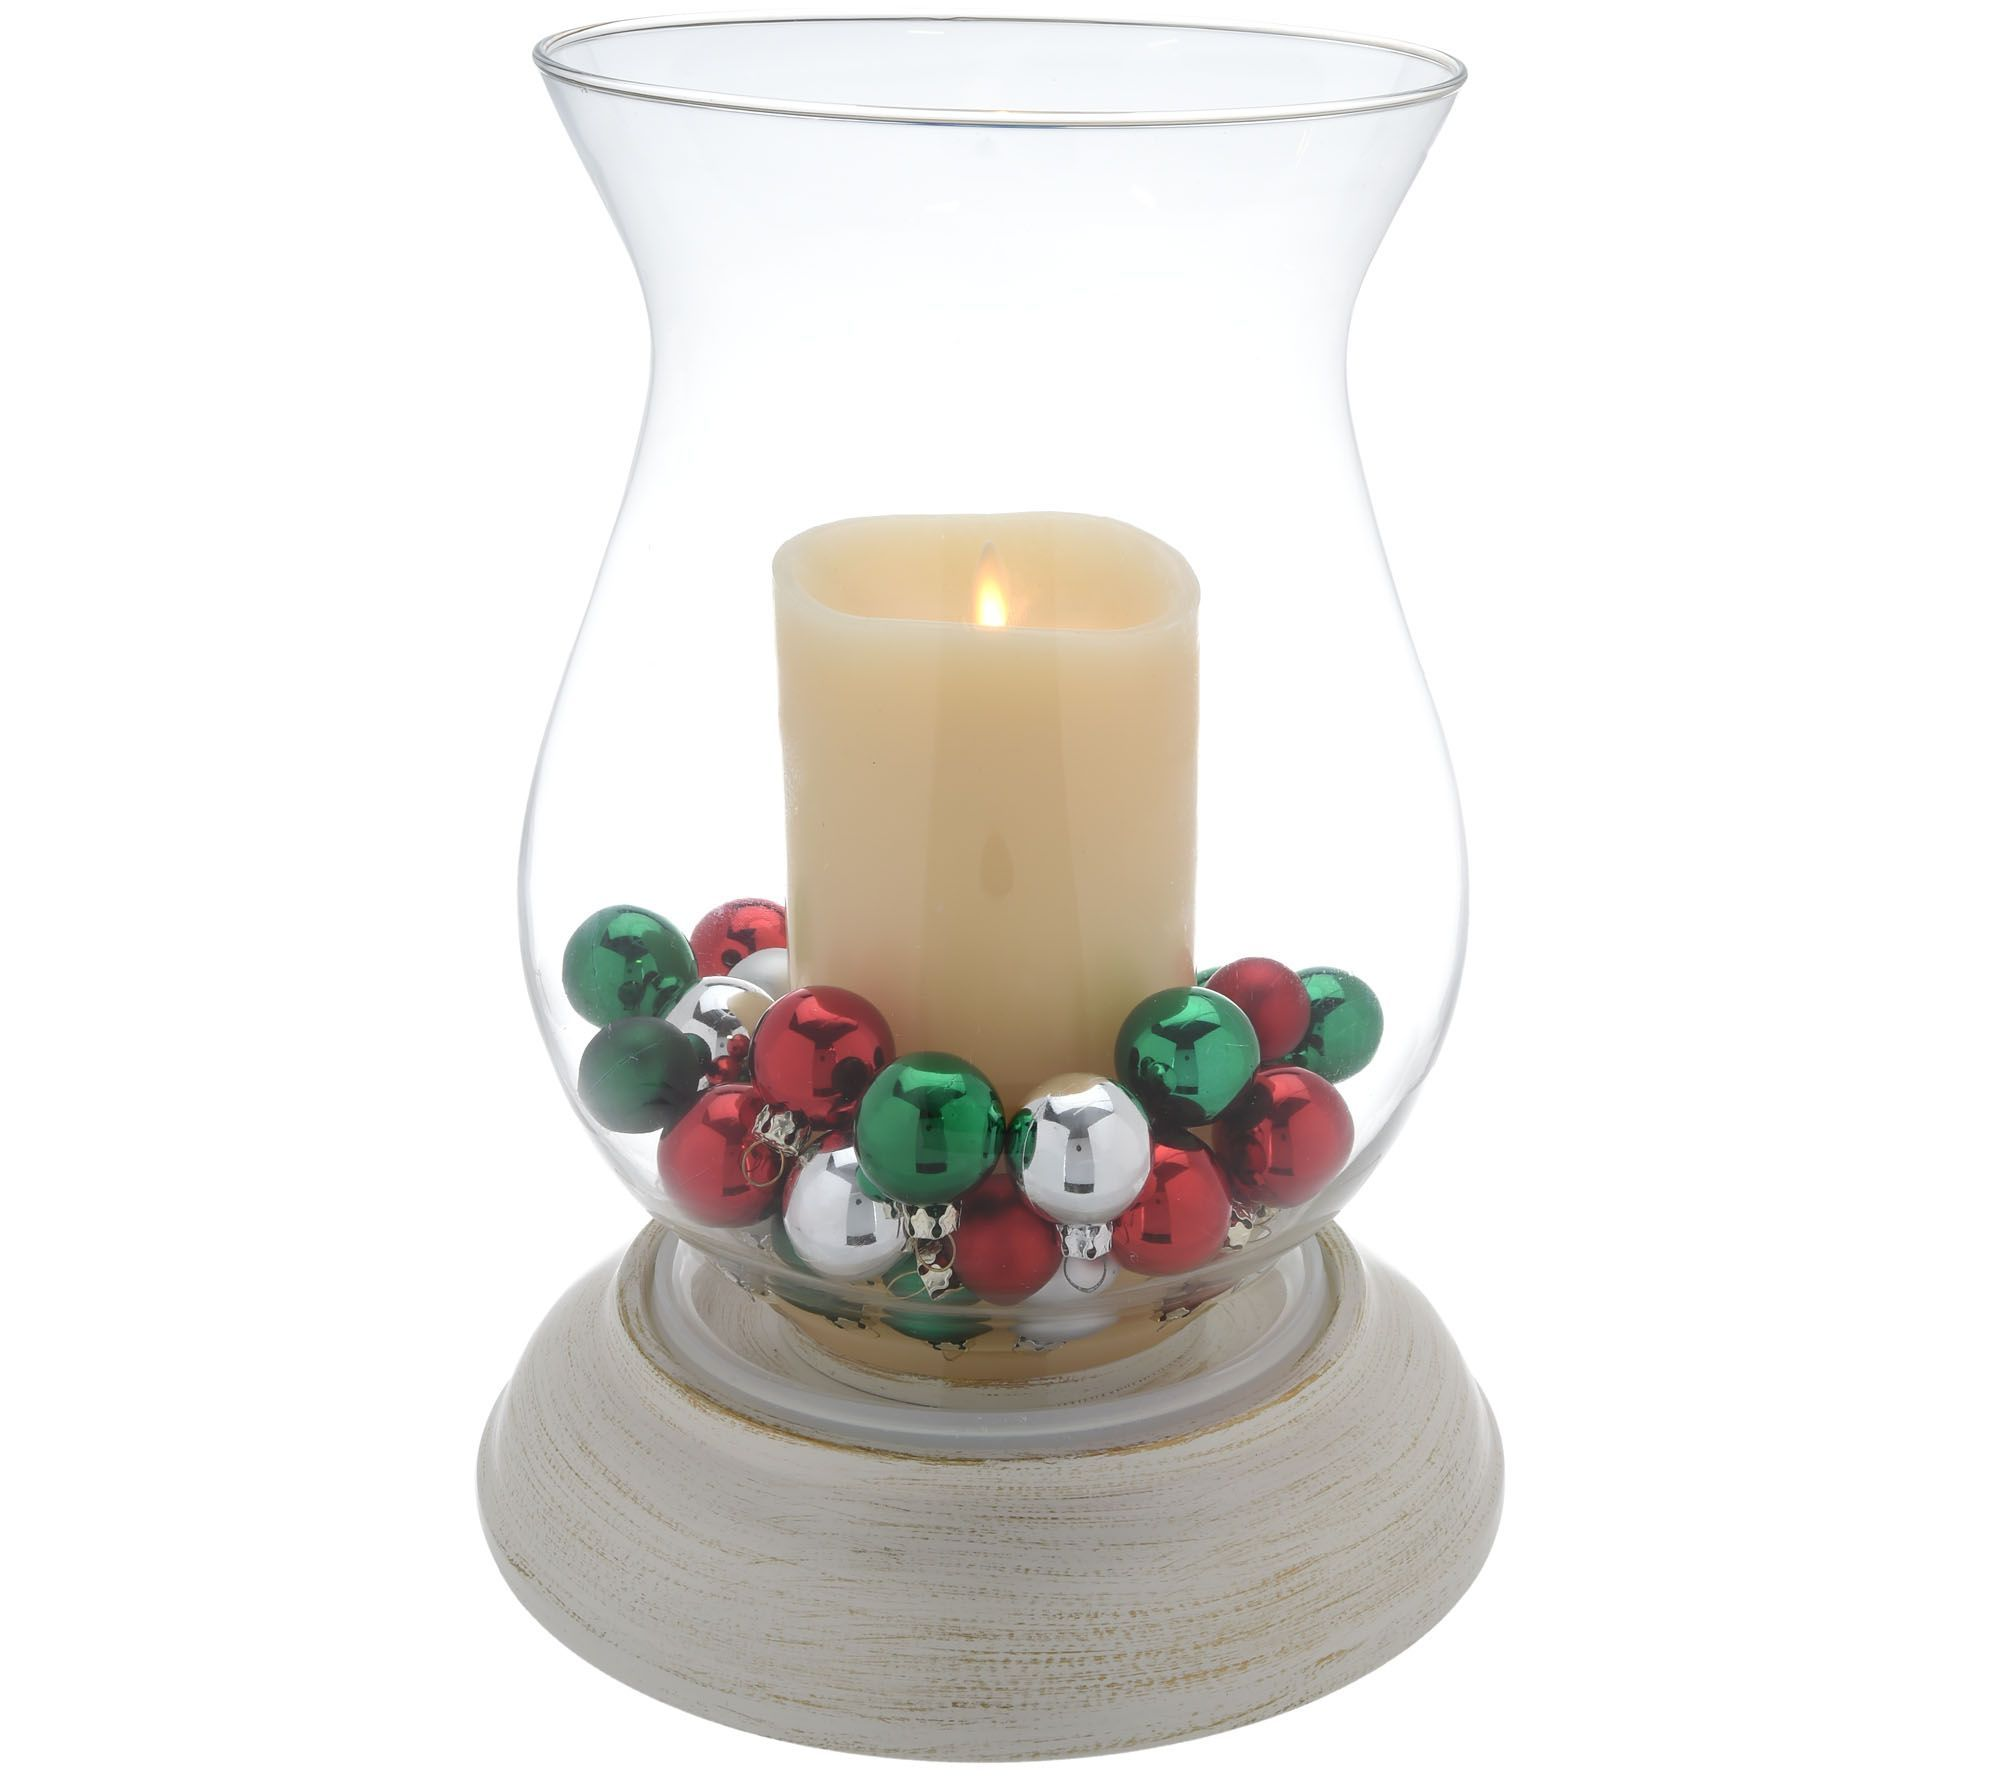 Qvc Flameless Candles Interesting Luminara Hurricane With Flameless Candle And Two Seasonal Fills Inspiration Design